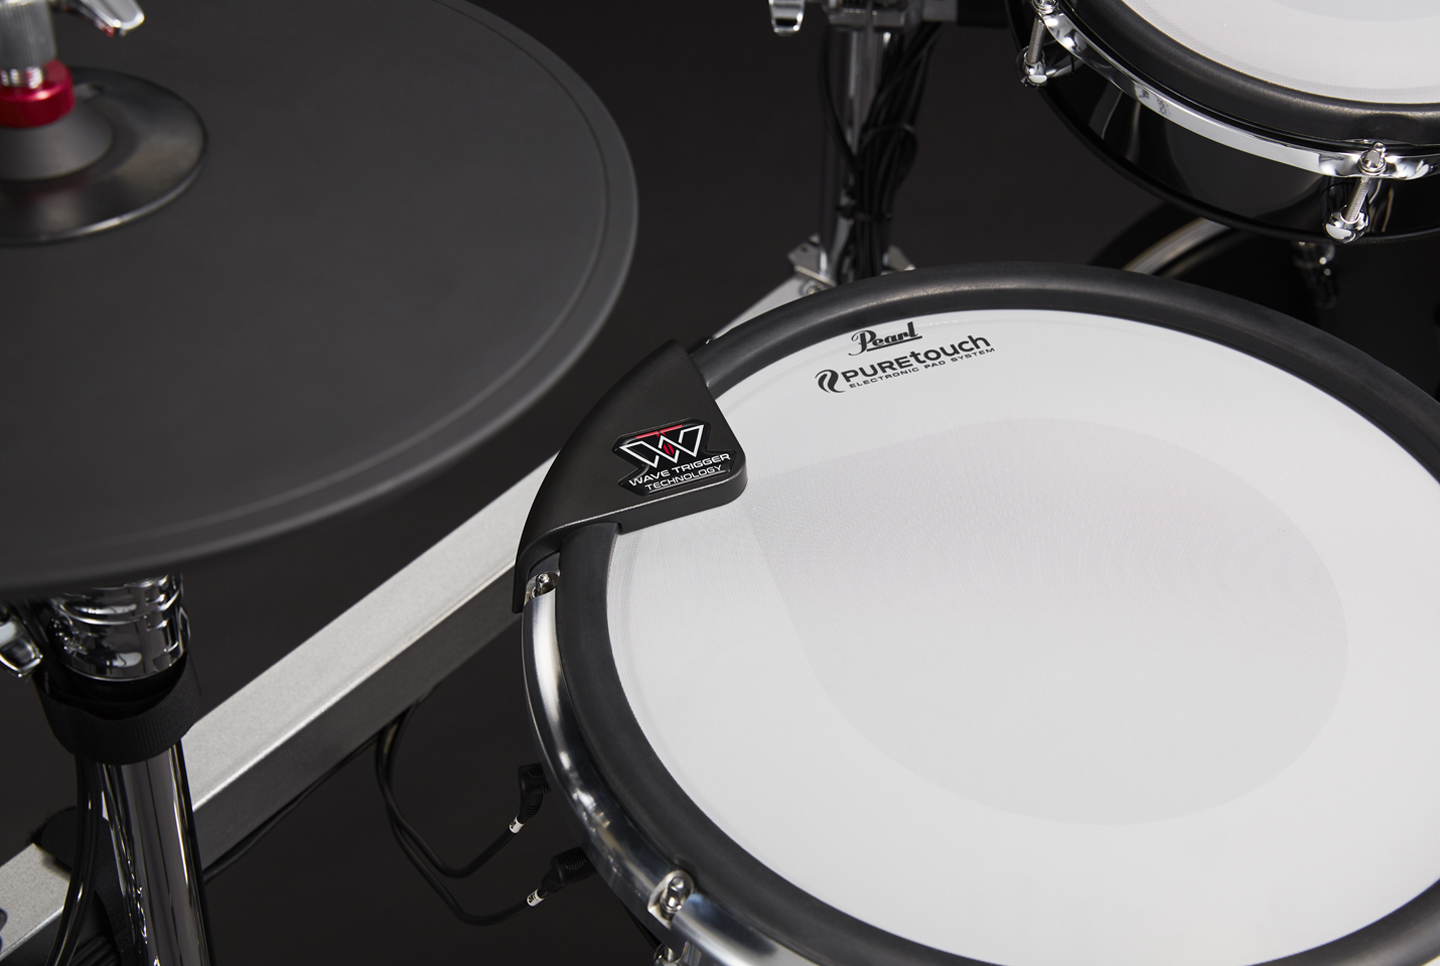 Pearl Drums e/Merge Wave Trigger